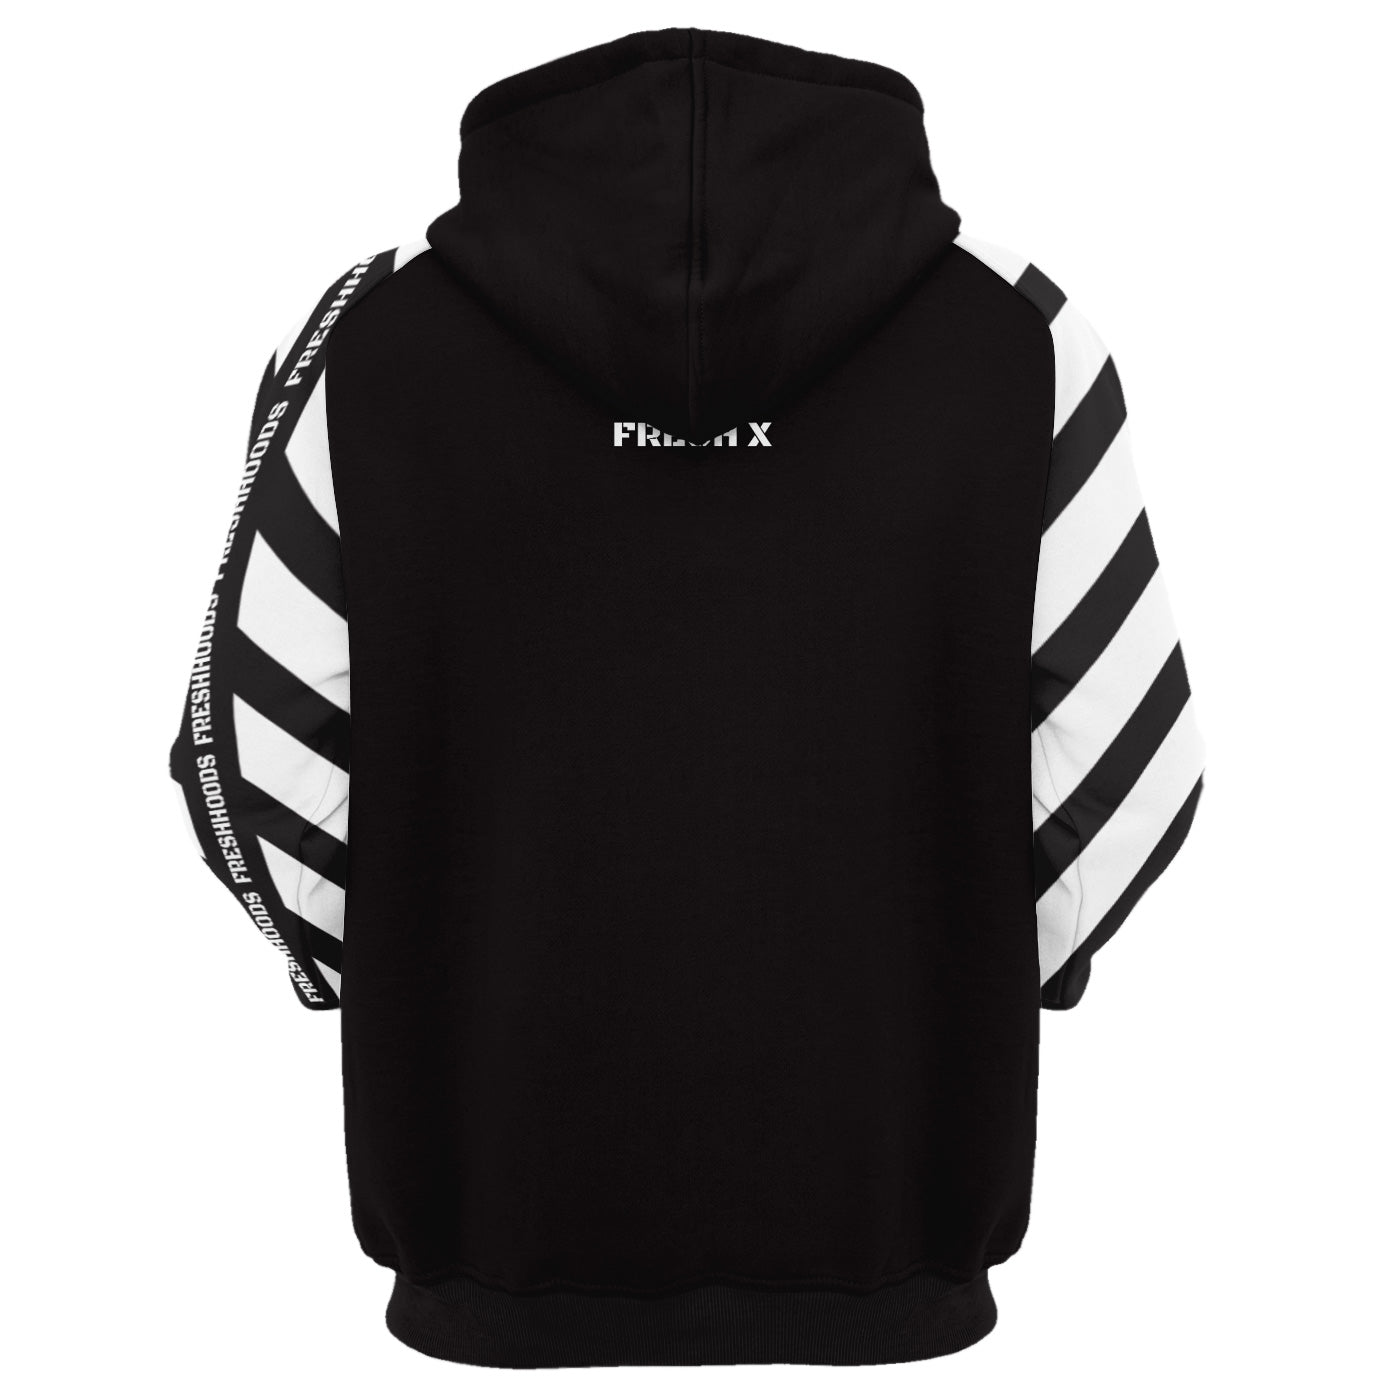 Pictured Hoodie